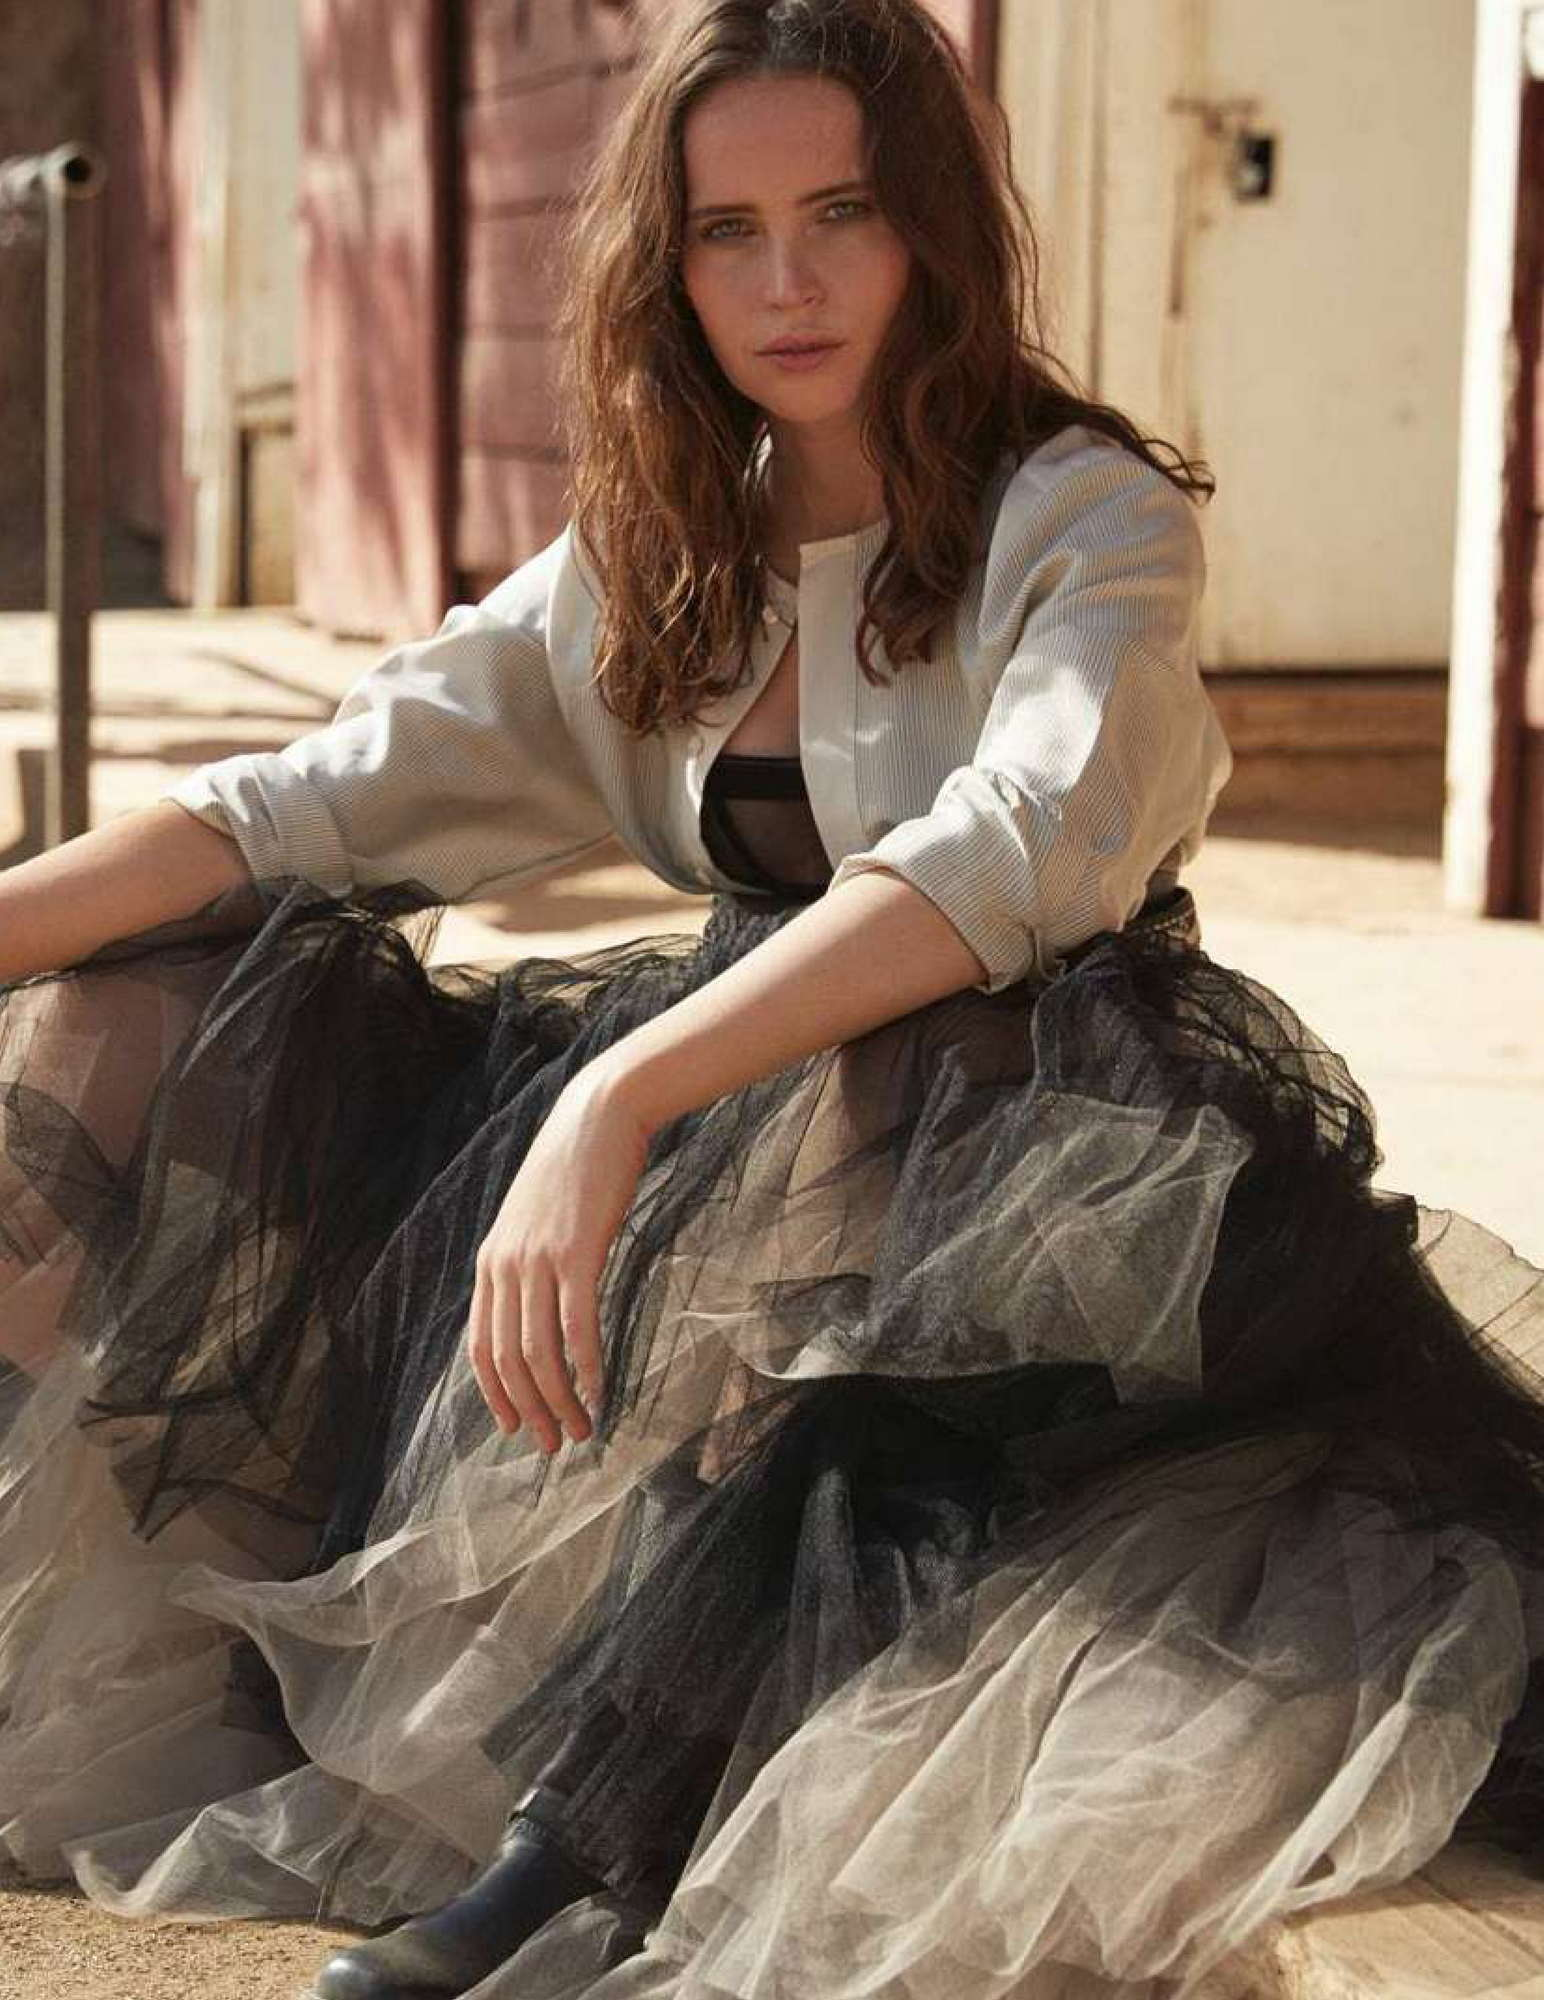 Felicity-Jones-Madame-Figaro-28-December-20184.jpg